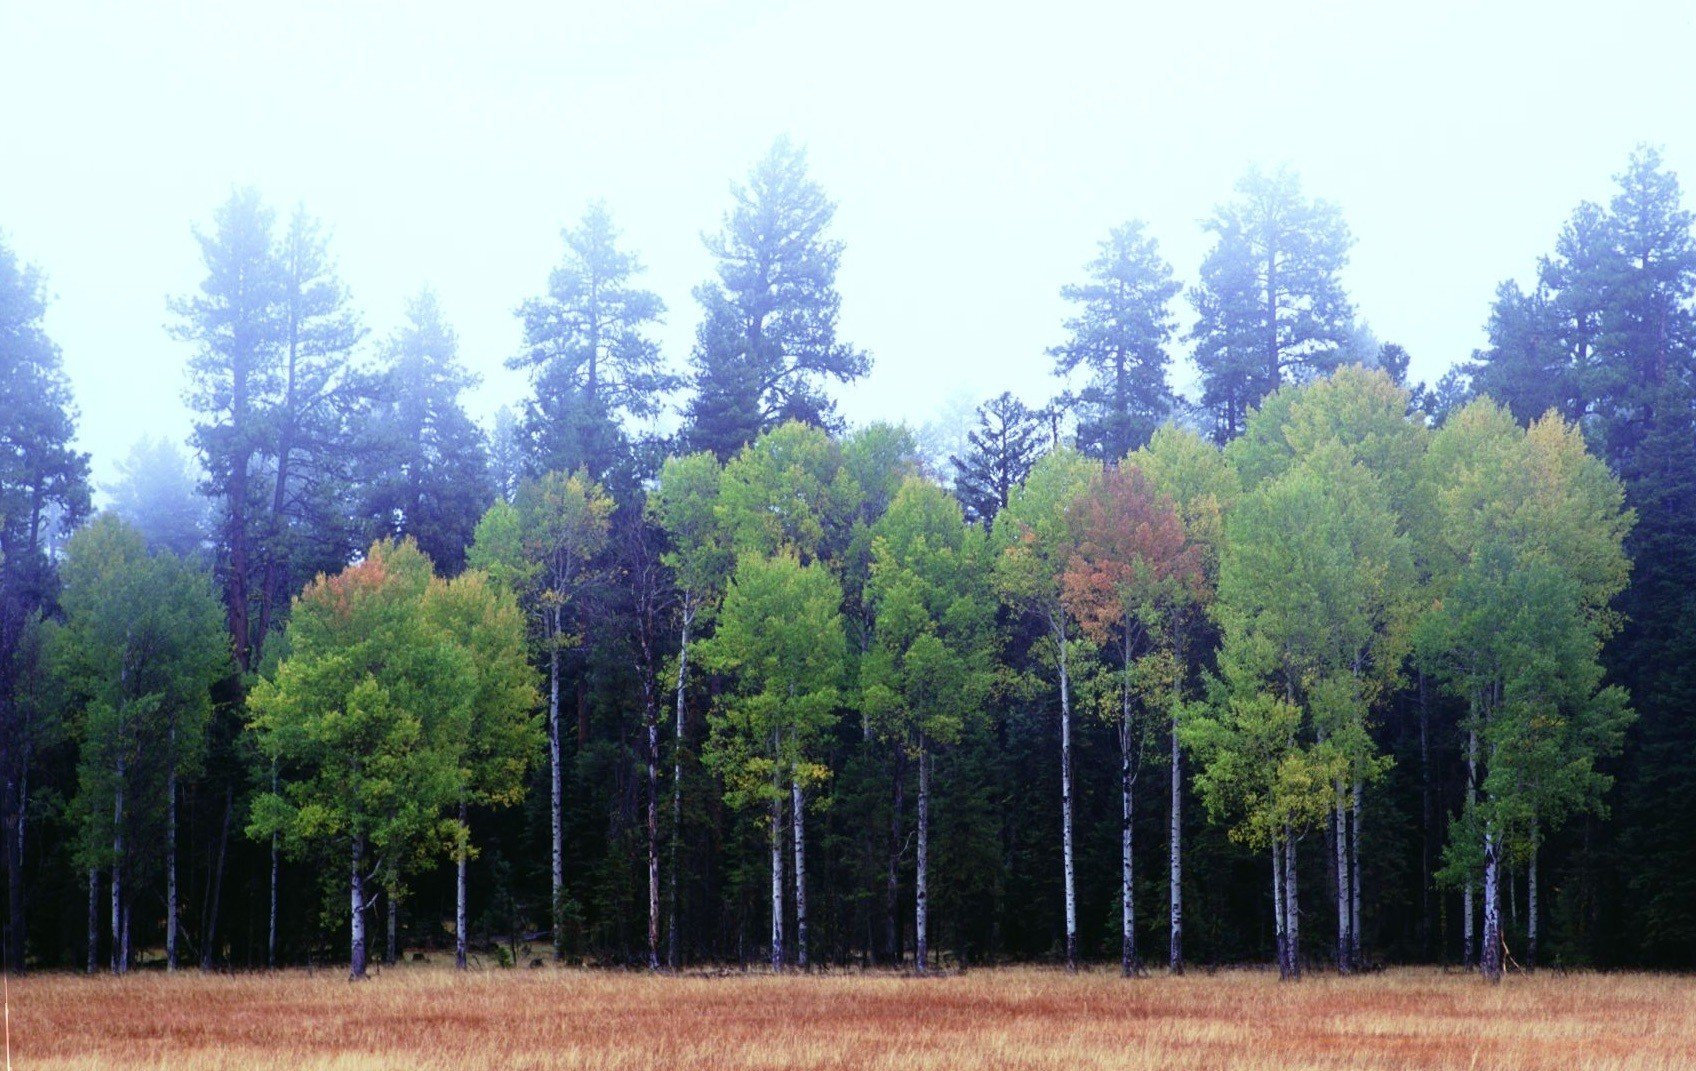 Figure 2. Quaking aspen (Populus tremuloides) (foreground) and ponderosa pine (Pinus ponderosa) (background) on the Ochoco National Forest in Oregon. While aesthetically pleasing, the image is disturbing if you note the utter lack of any aspen replacement stems  Source: Sandy Lonsdale. First appeared in Oregon Wild: Endangered Forest Wilderness (Timber Press, 2004).